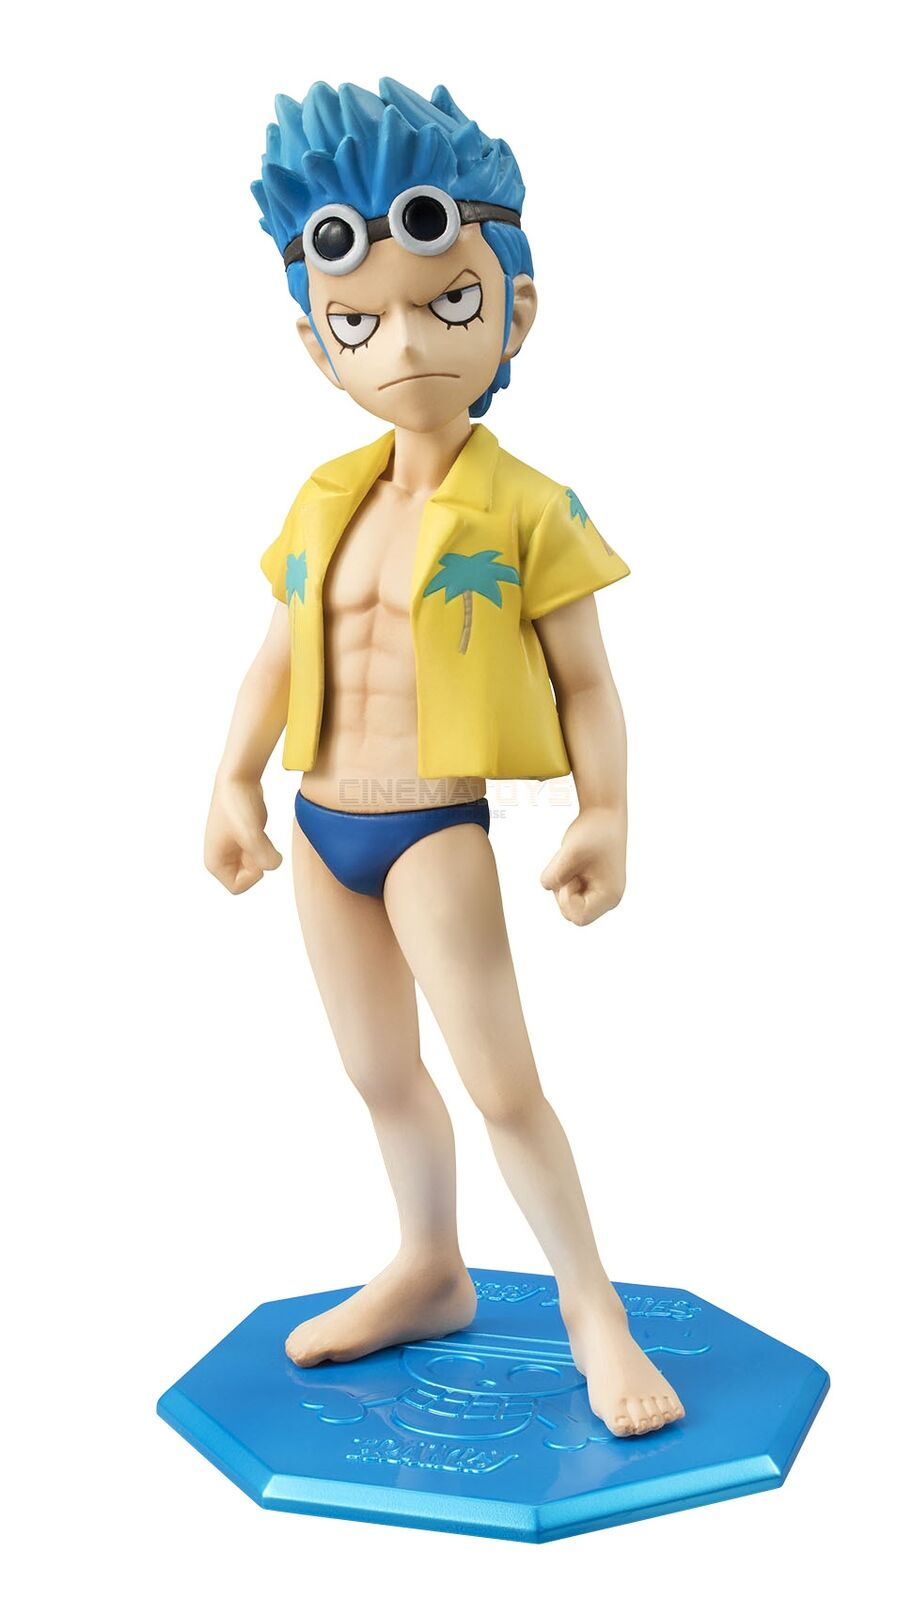 Megahouse Megahouse Megahouse Excellent Model Mild Serie Portrait of Pirates One Piece Cb-R3 Franky 667cae